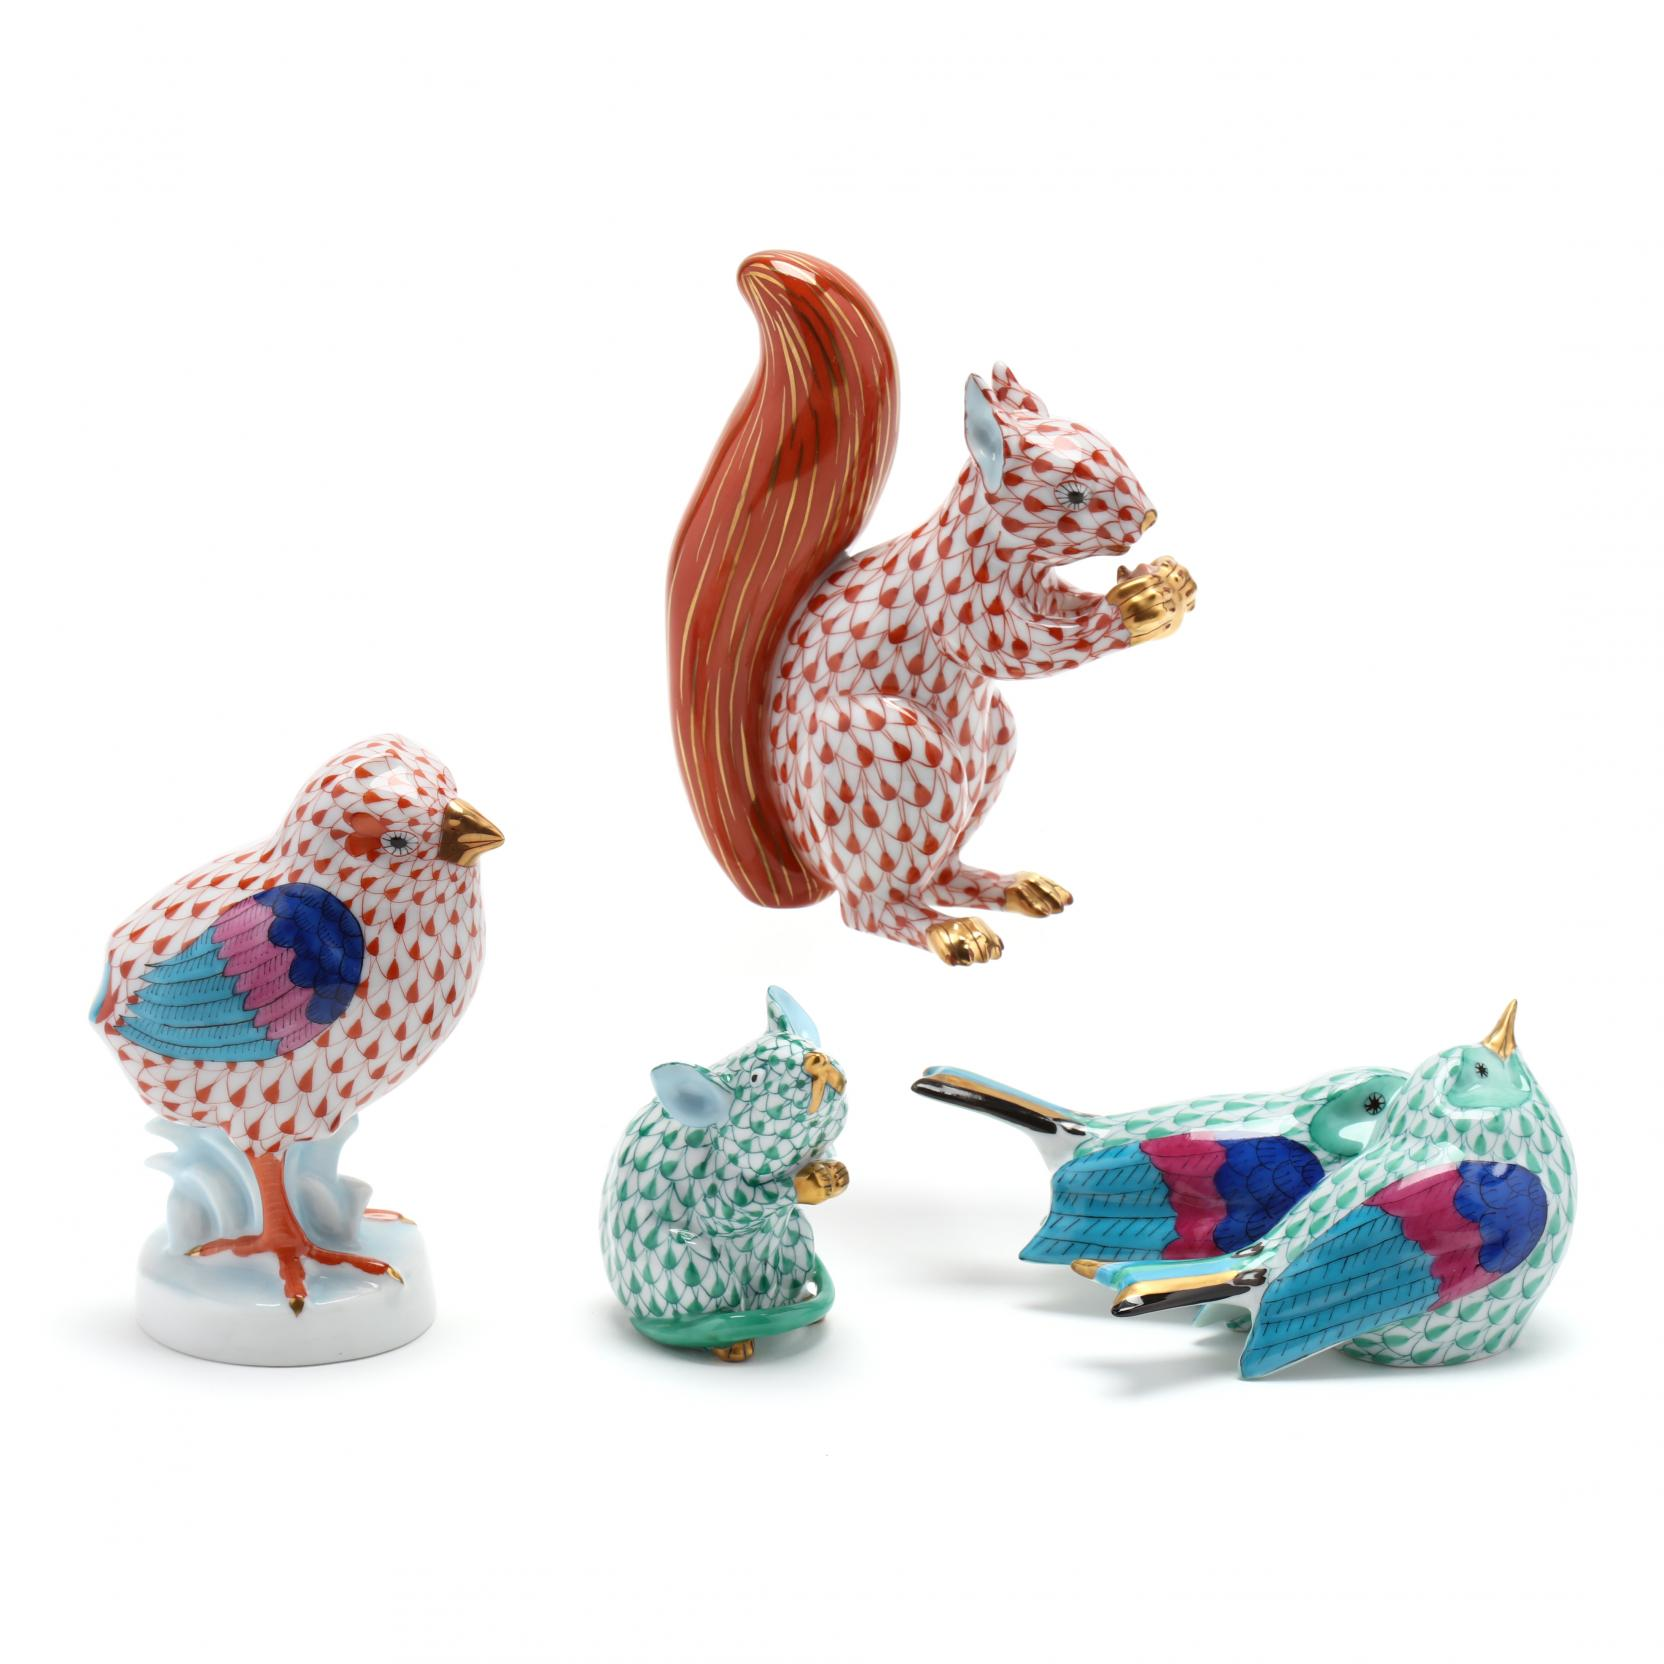 four-herend-porcelain-animal-figurines